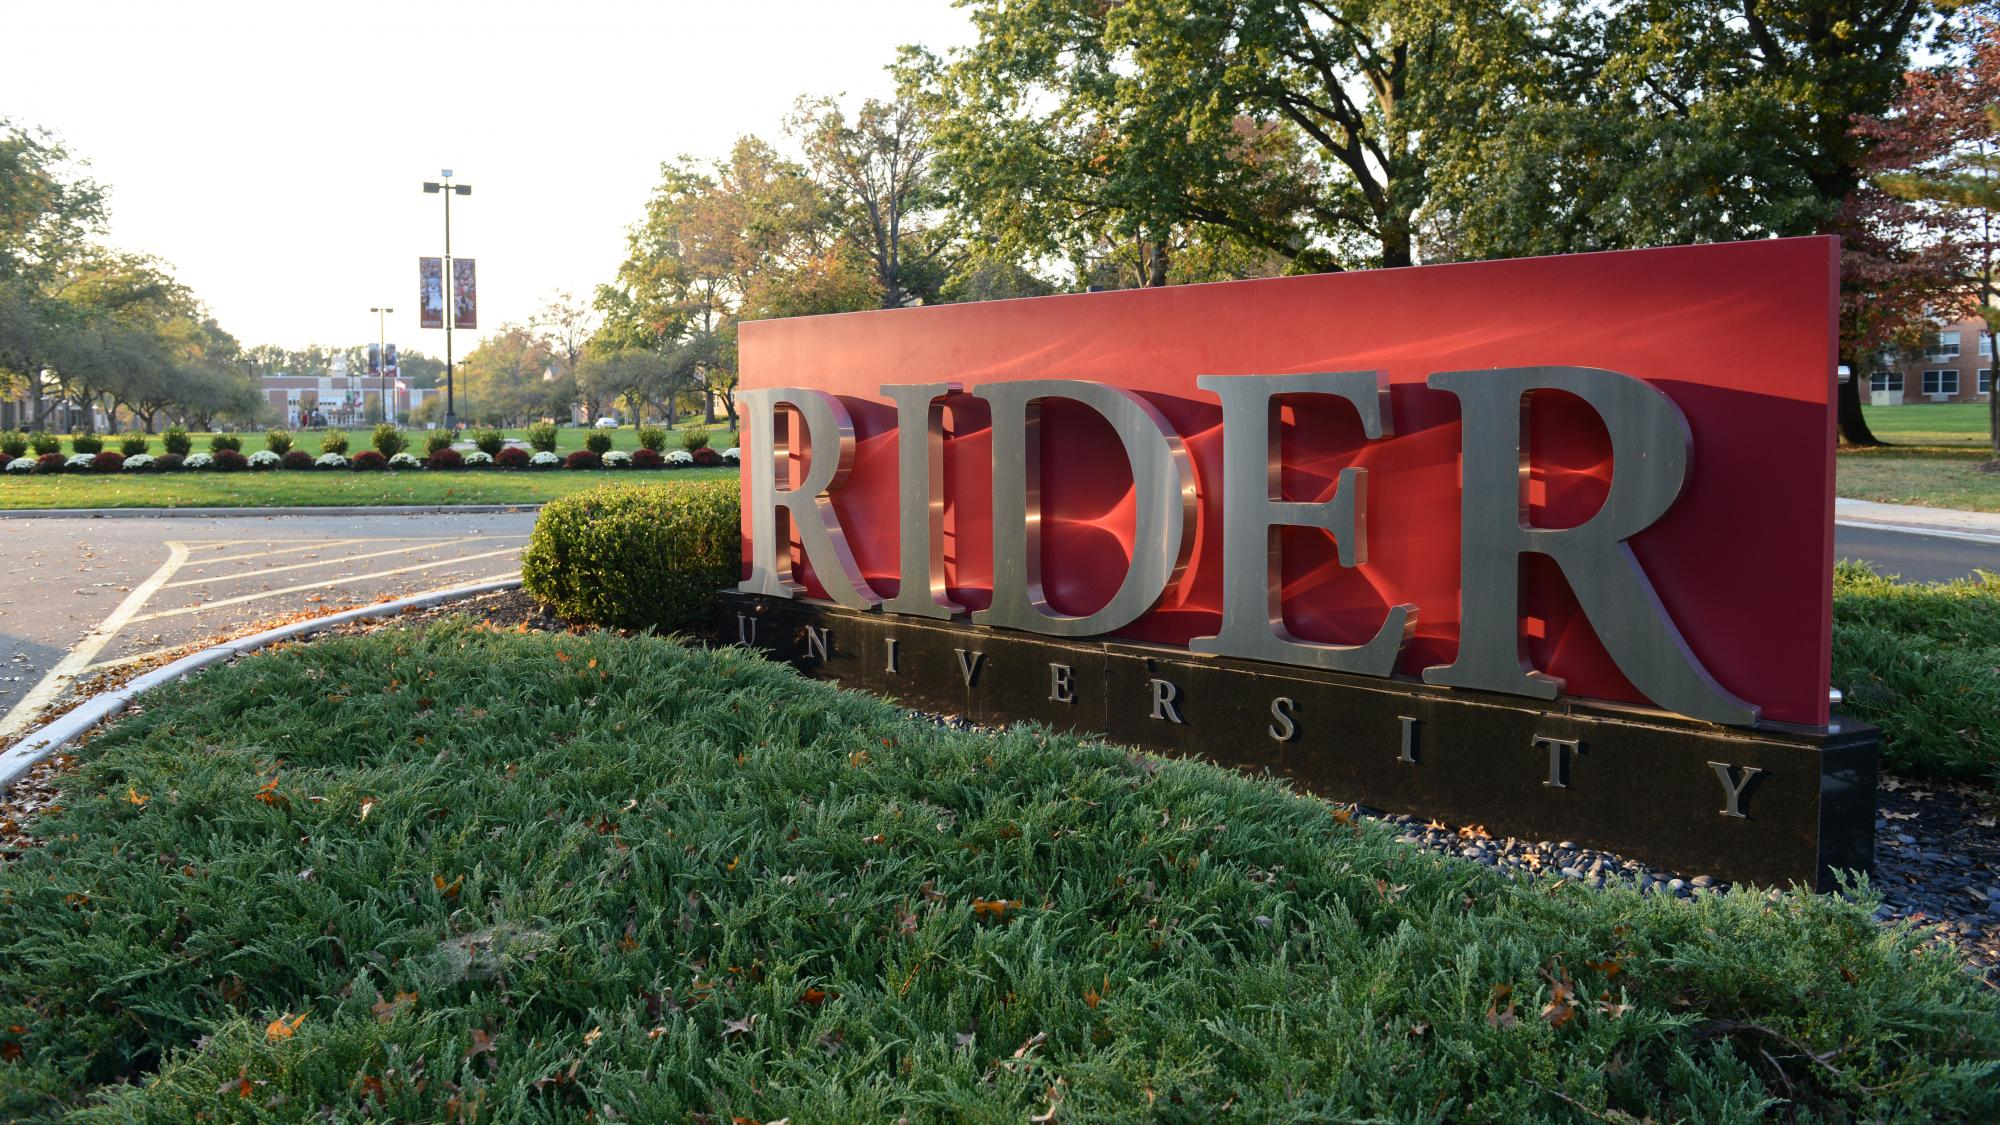 chick-fil-a protests rider university